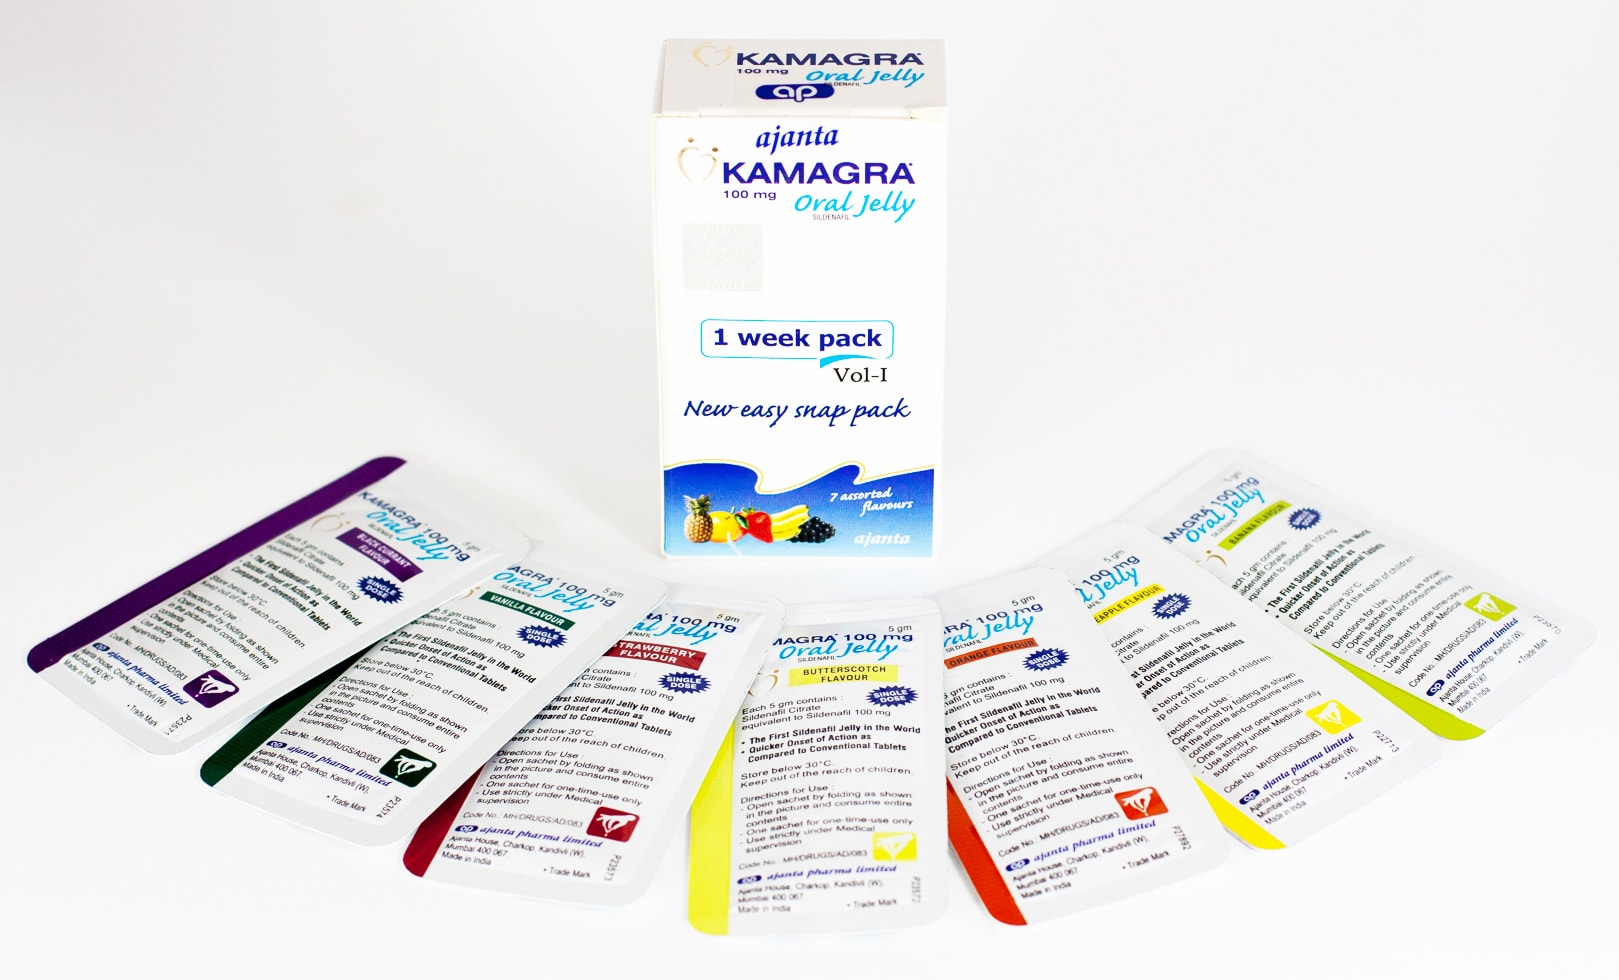 7 Reasons to Try Kamagra Oral Jelly